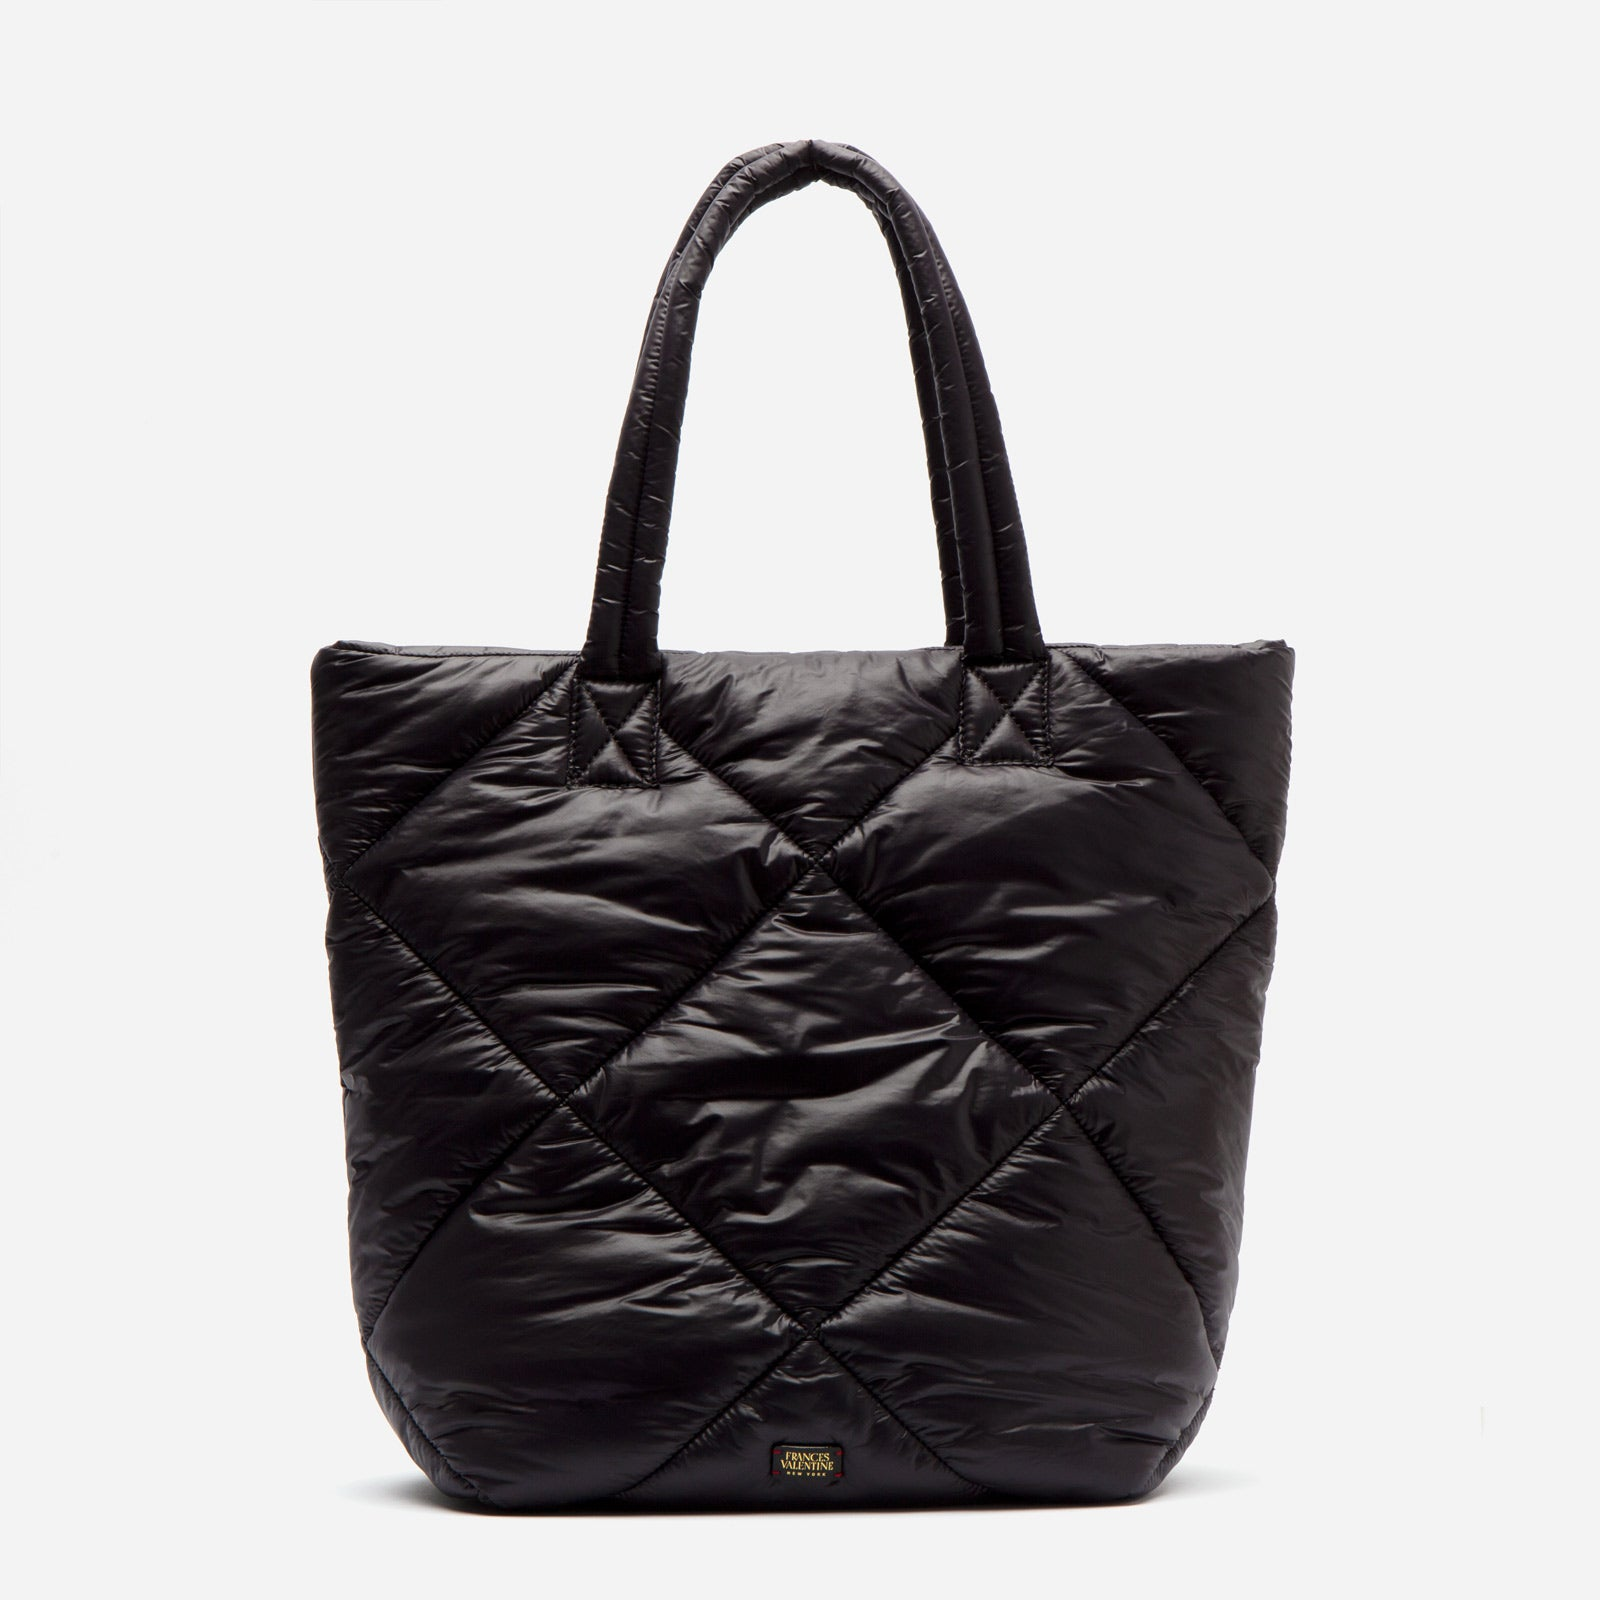 North South Tote Quilted Satin Nylon Black - Frances Valentine